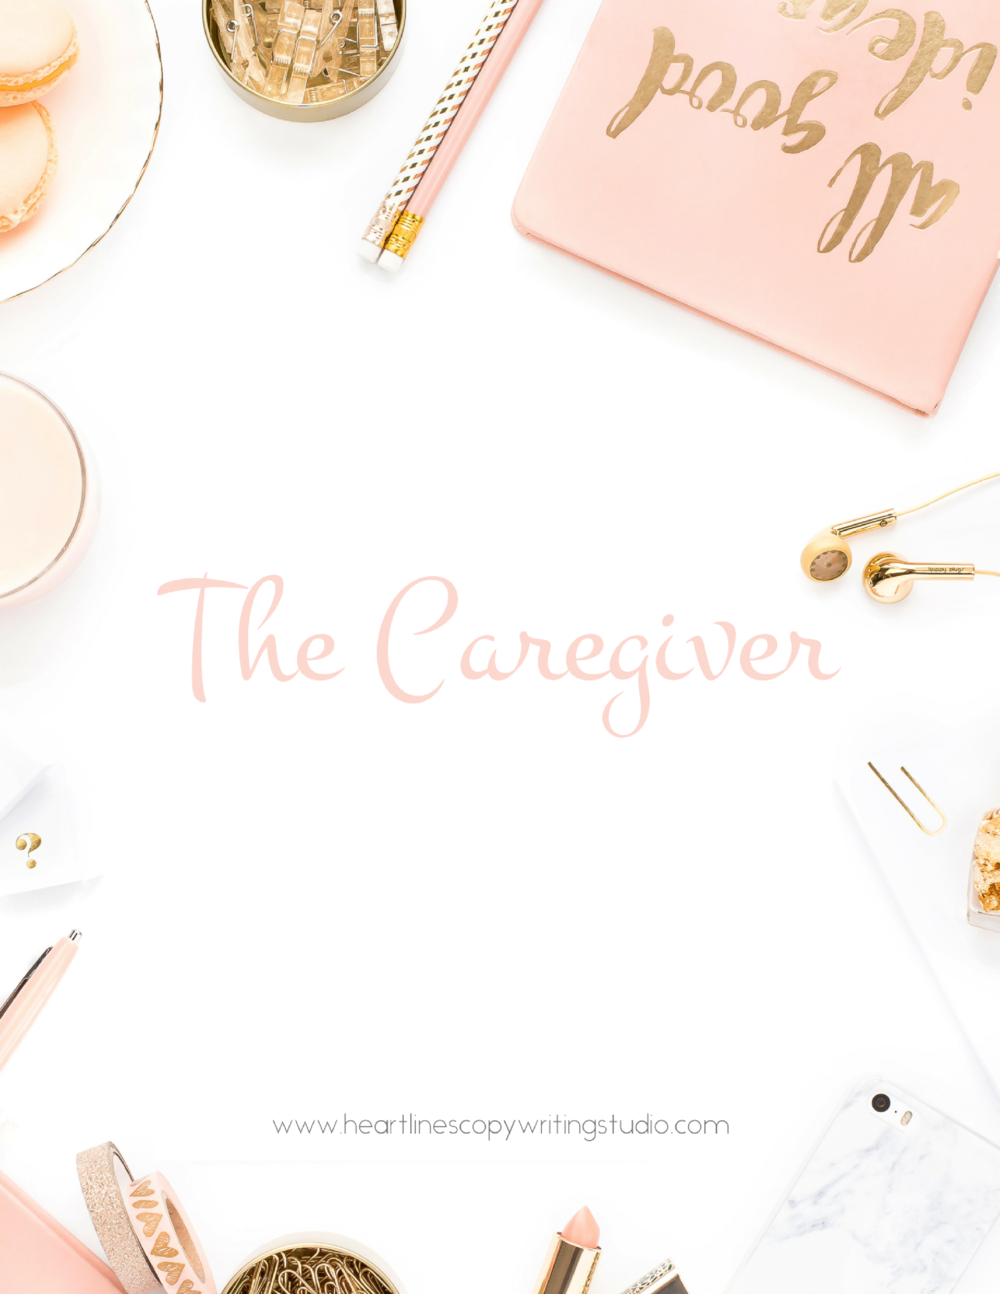 The Caregiver.png